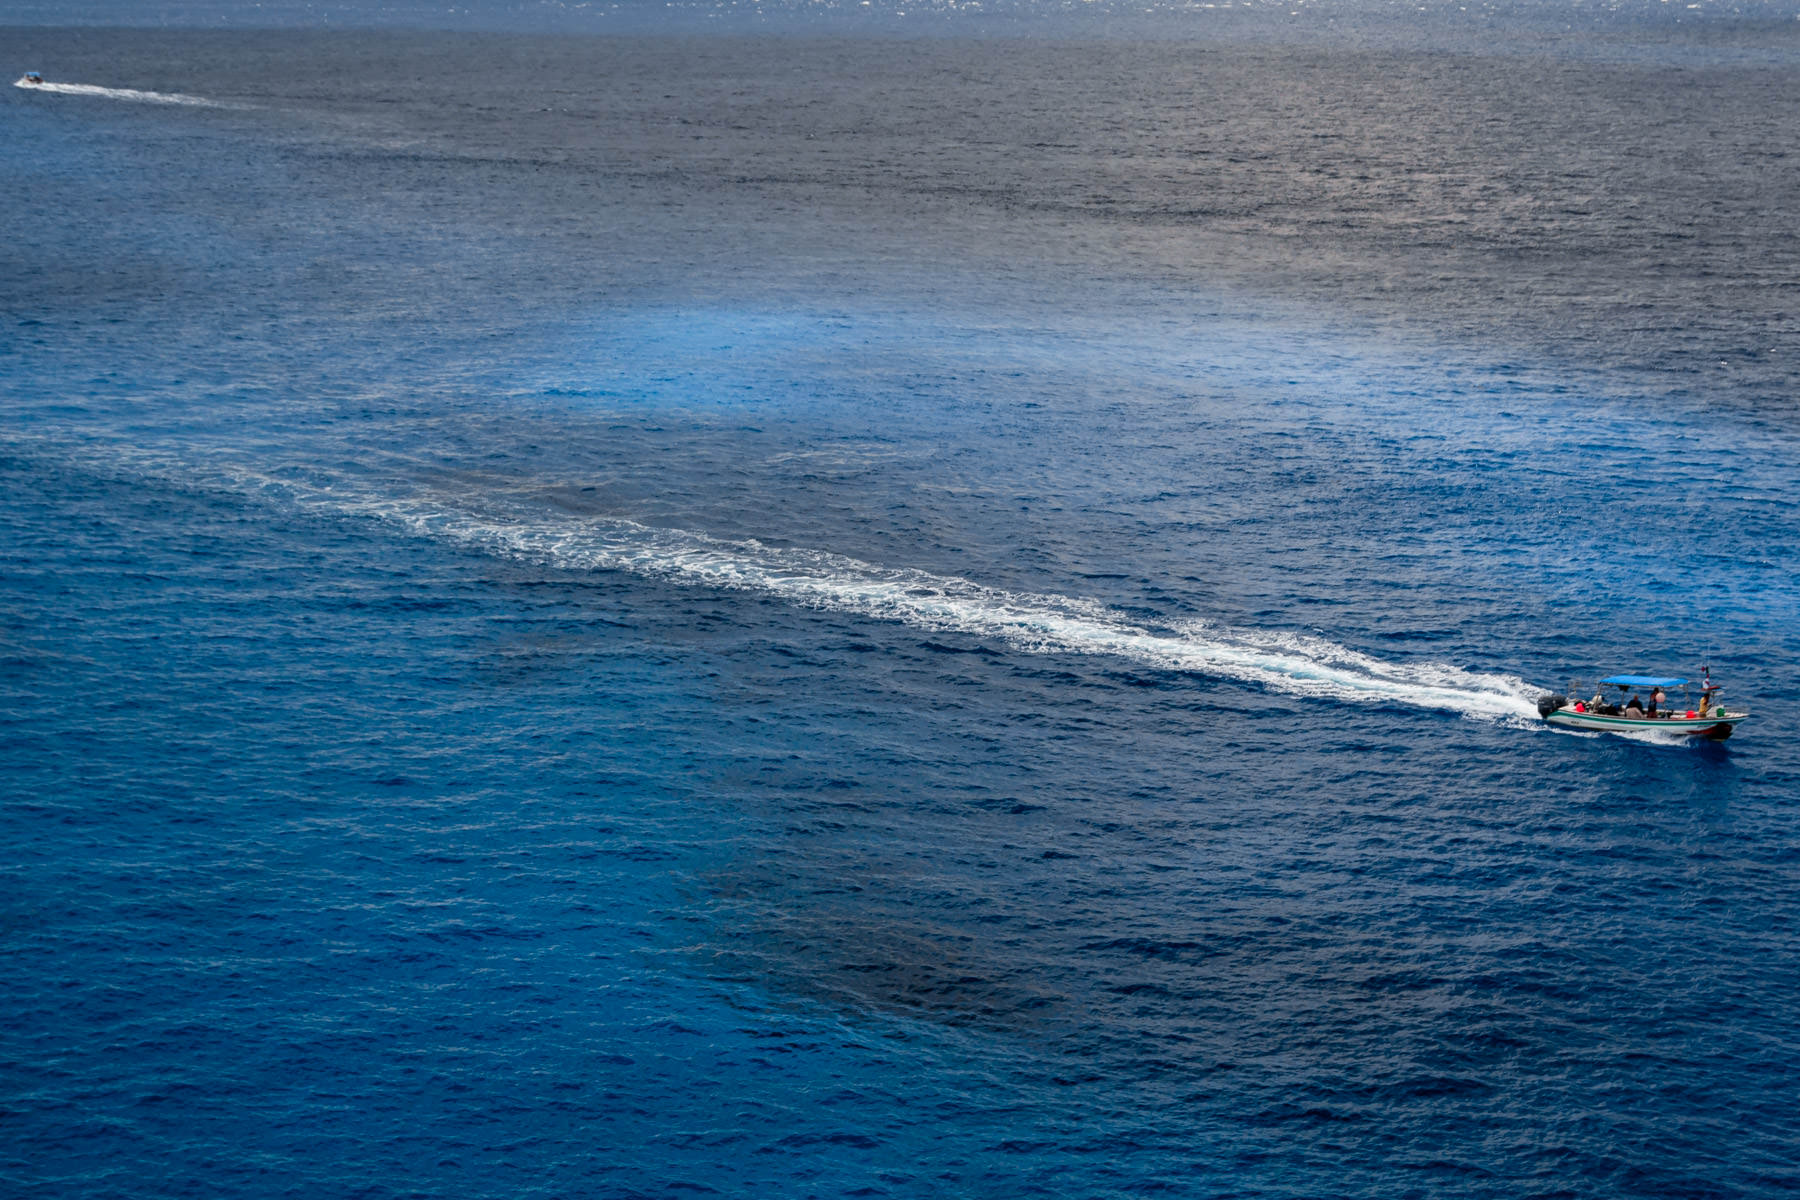 A boat cuts through blue waters just off the coast of Cozumel, Mexico.